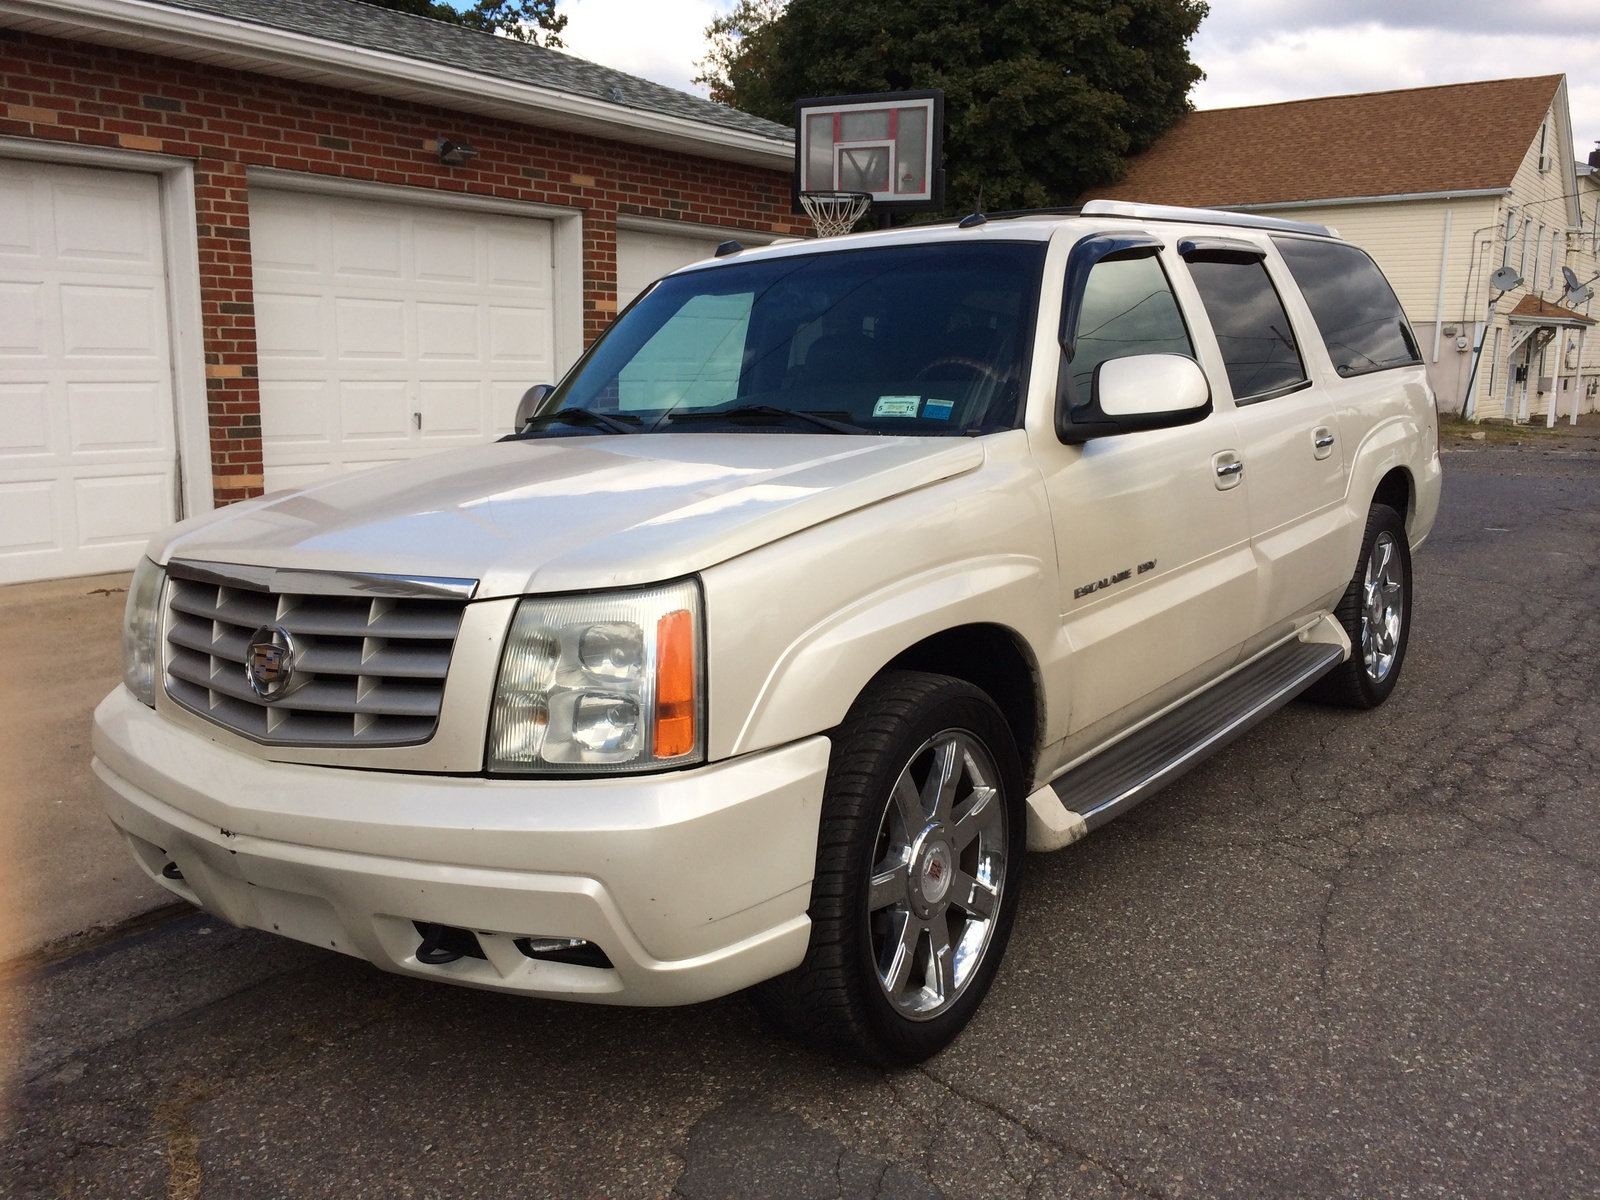 2004 cadillac escalade esv platinum edition awd specs autos post. Black Bedroom Furniture Sets. Home Design Ideas